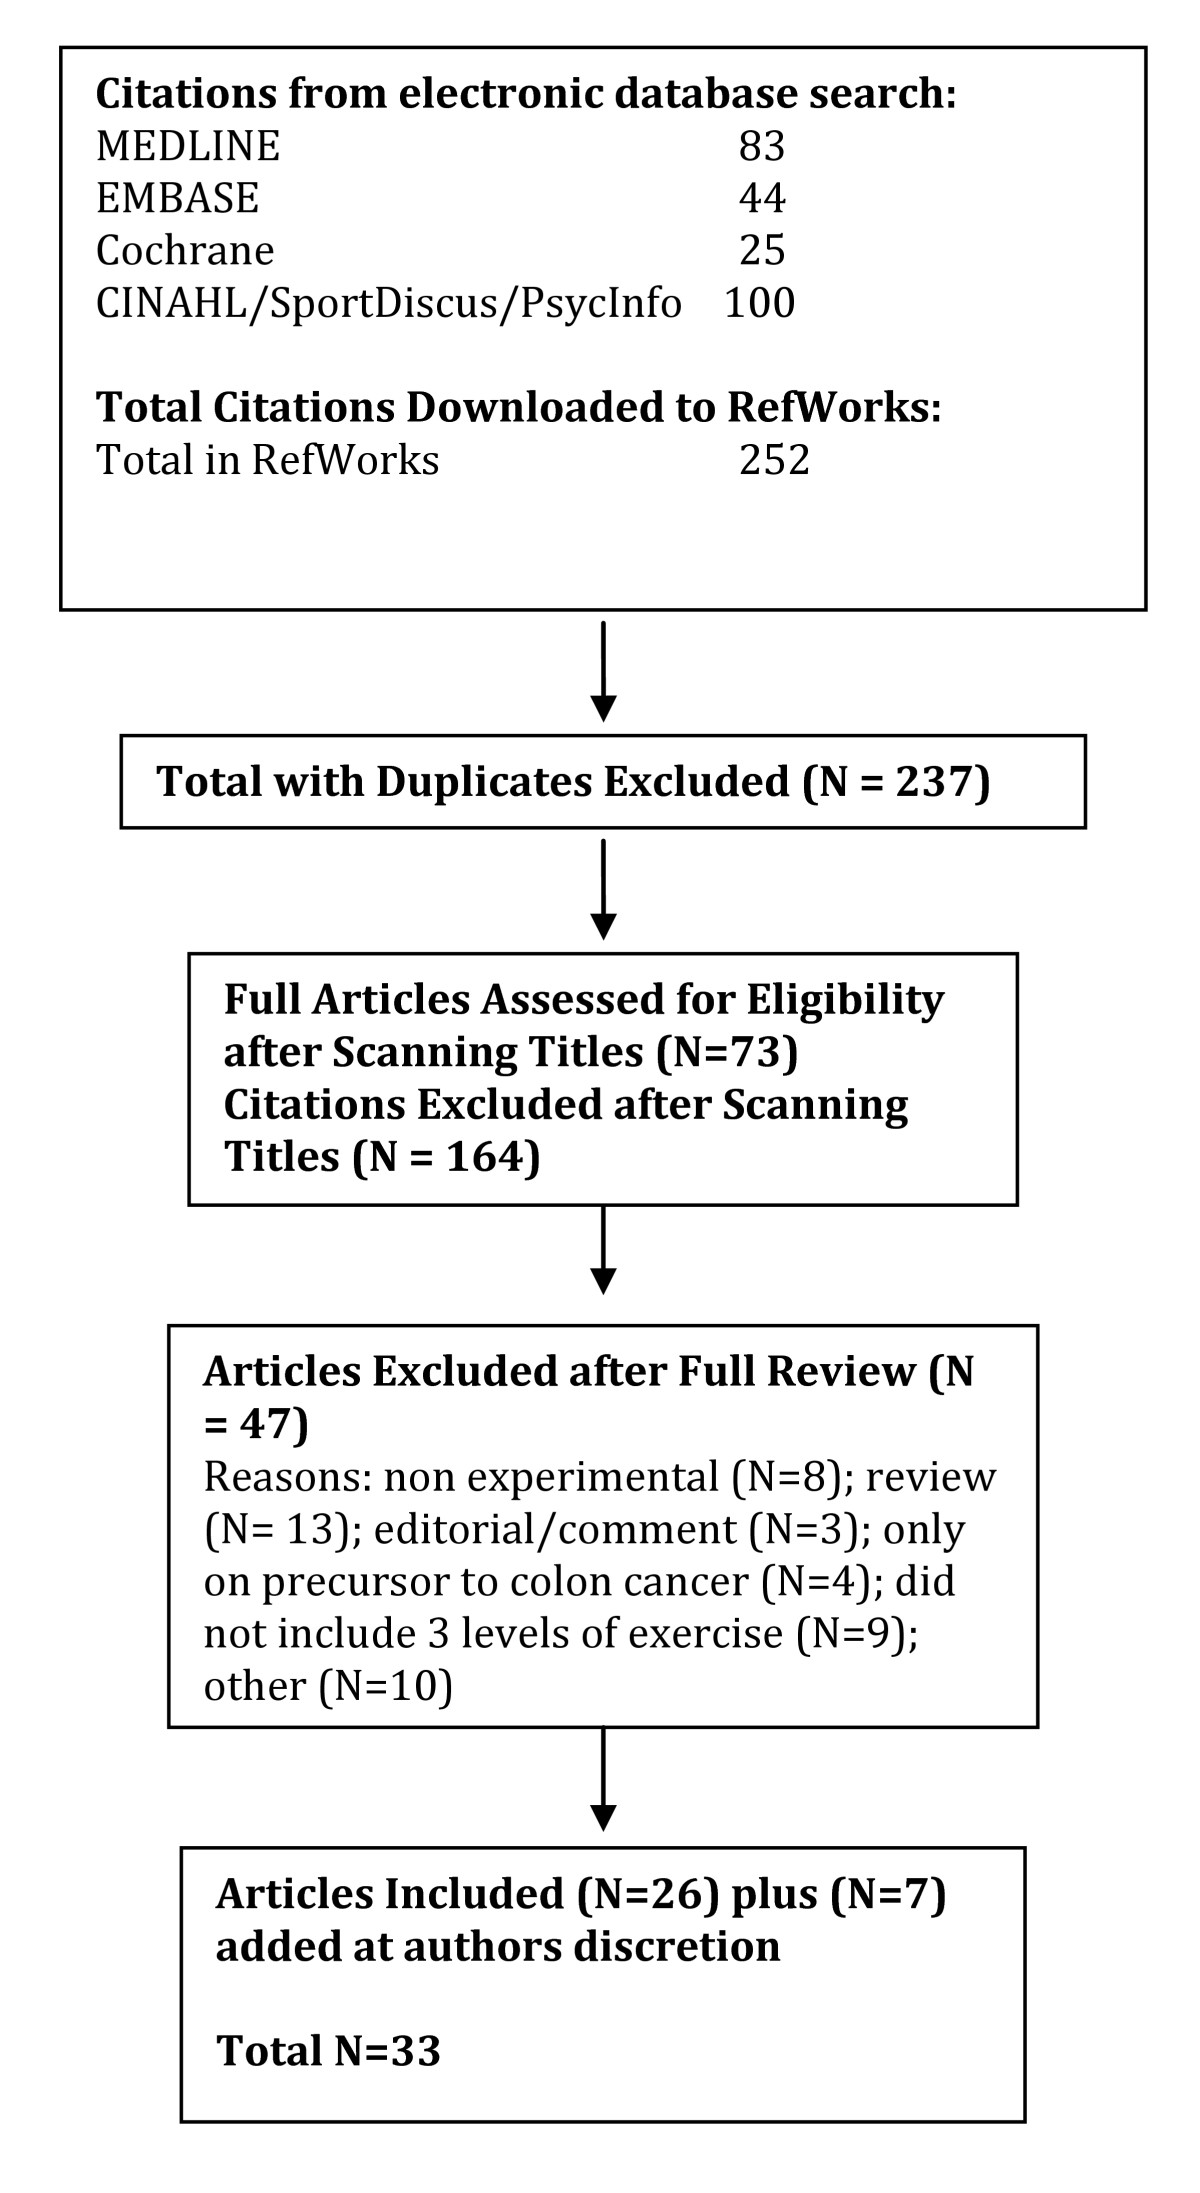 http://static-content.springer.com/image/art%3A10.1186%2F1479-5868-7-39/MediaObjects/12966_2009_Article_345_Fig7_HTML.jpg